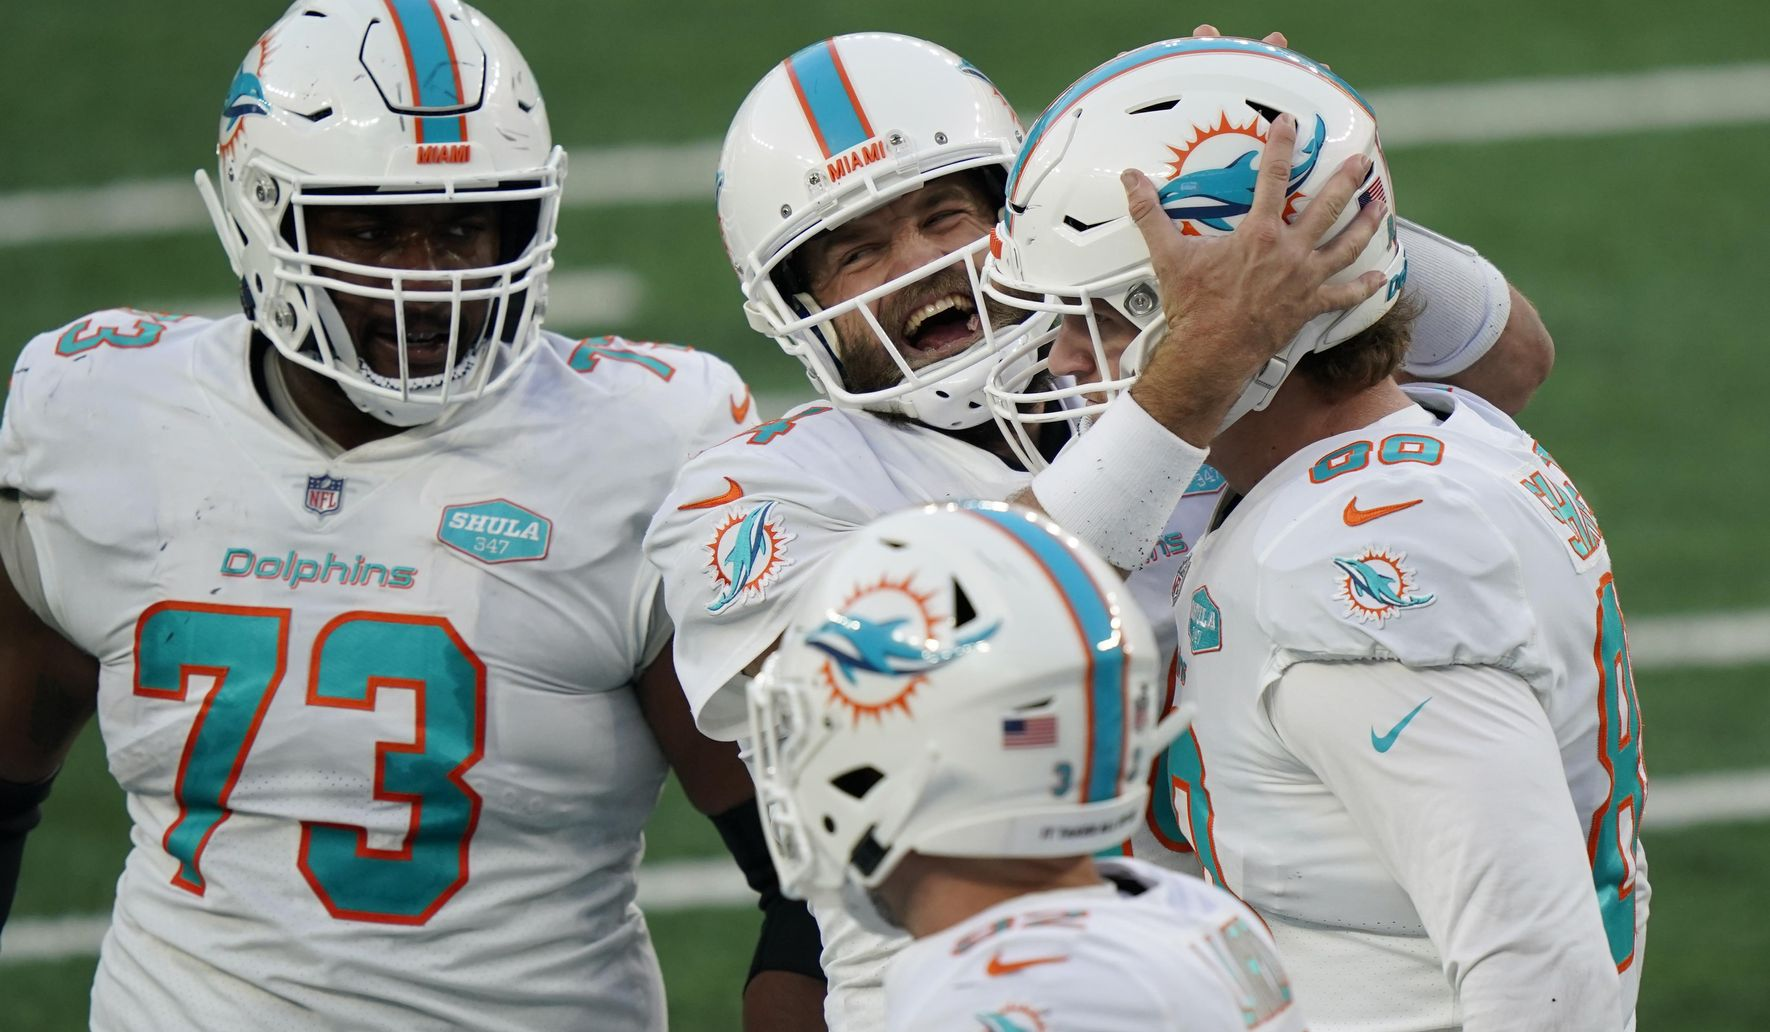 Dolphins_jets_football_97489_c0-182-4351-2718_s1770x1032